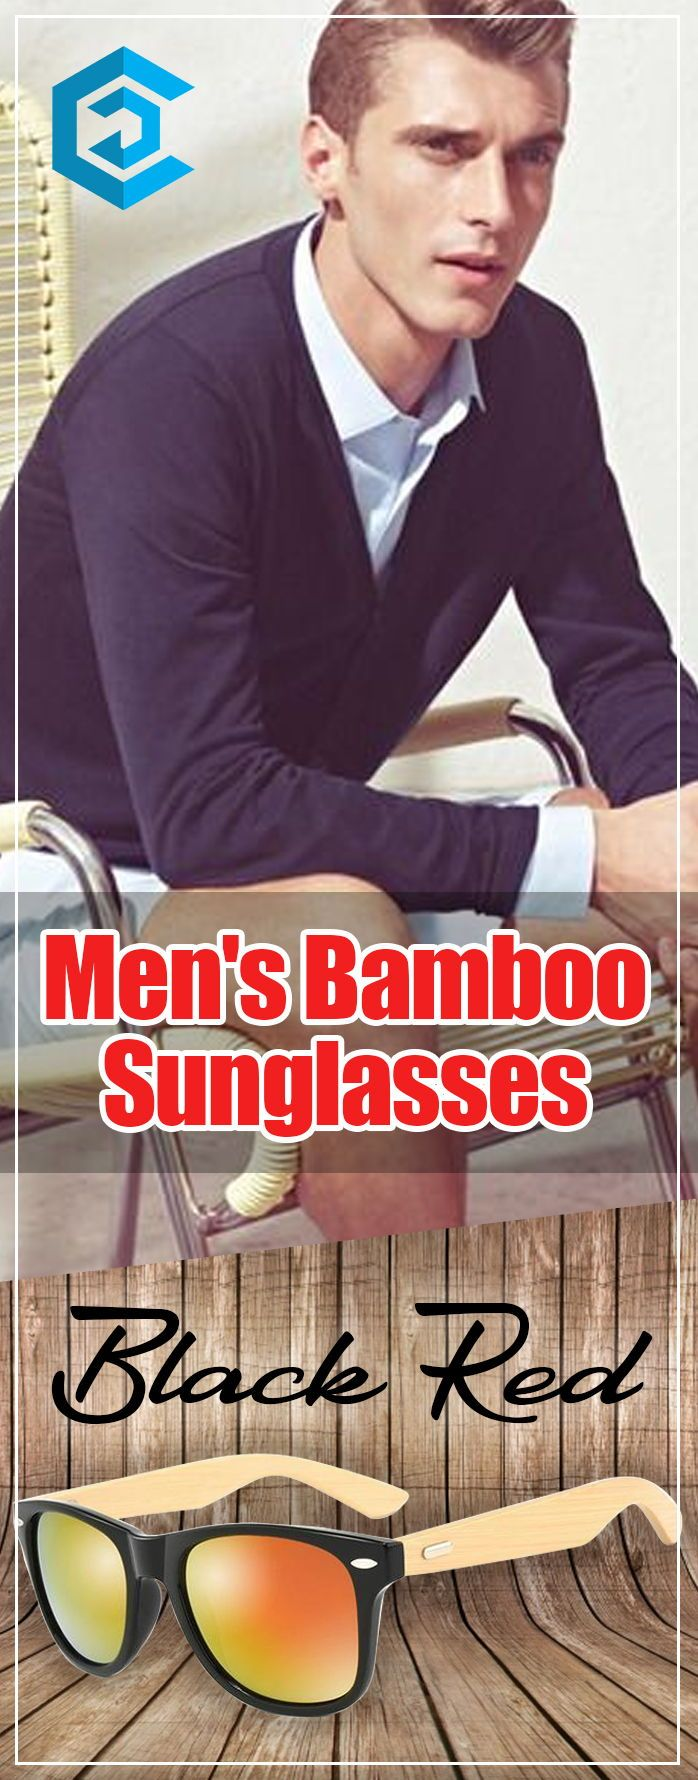 Men's Bamboo Sunglasses |2017| |fashion| |casual| |square| |wood| |hipster| |oval face| |style| |popular| |brands| |polarized| |sport| |designer| |classic| |affordable| |classy| |guys| |summer| |beach| #sunglasses